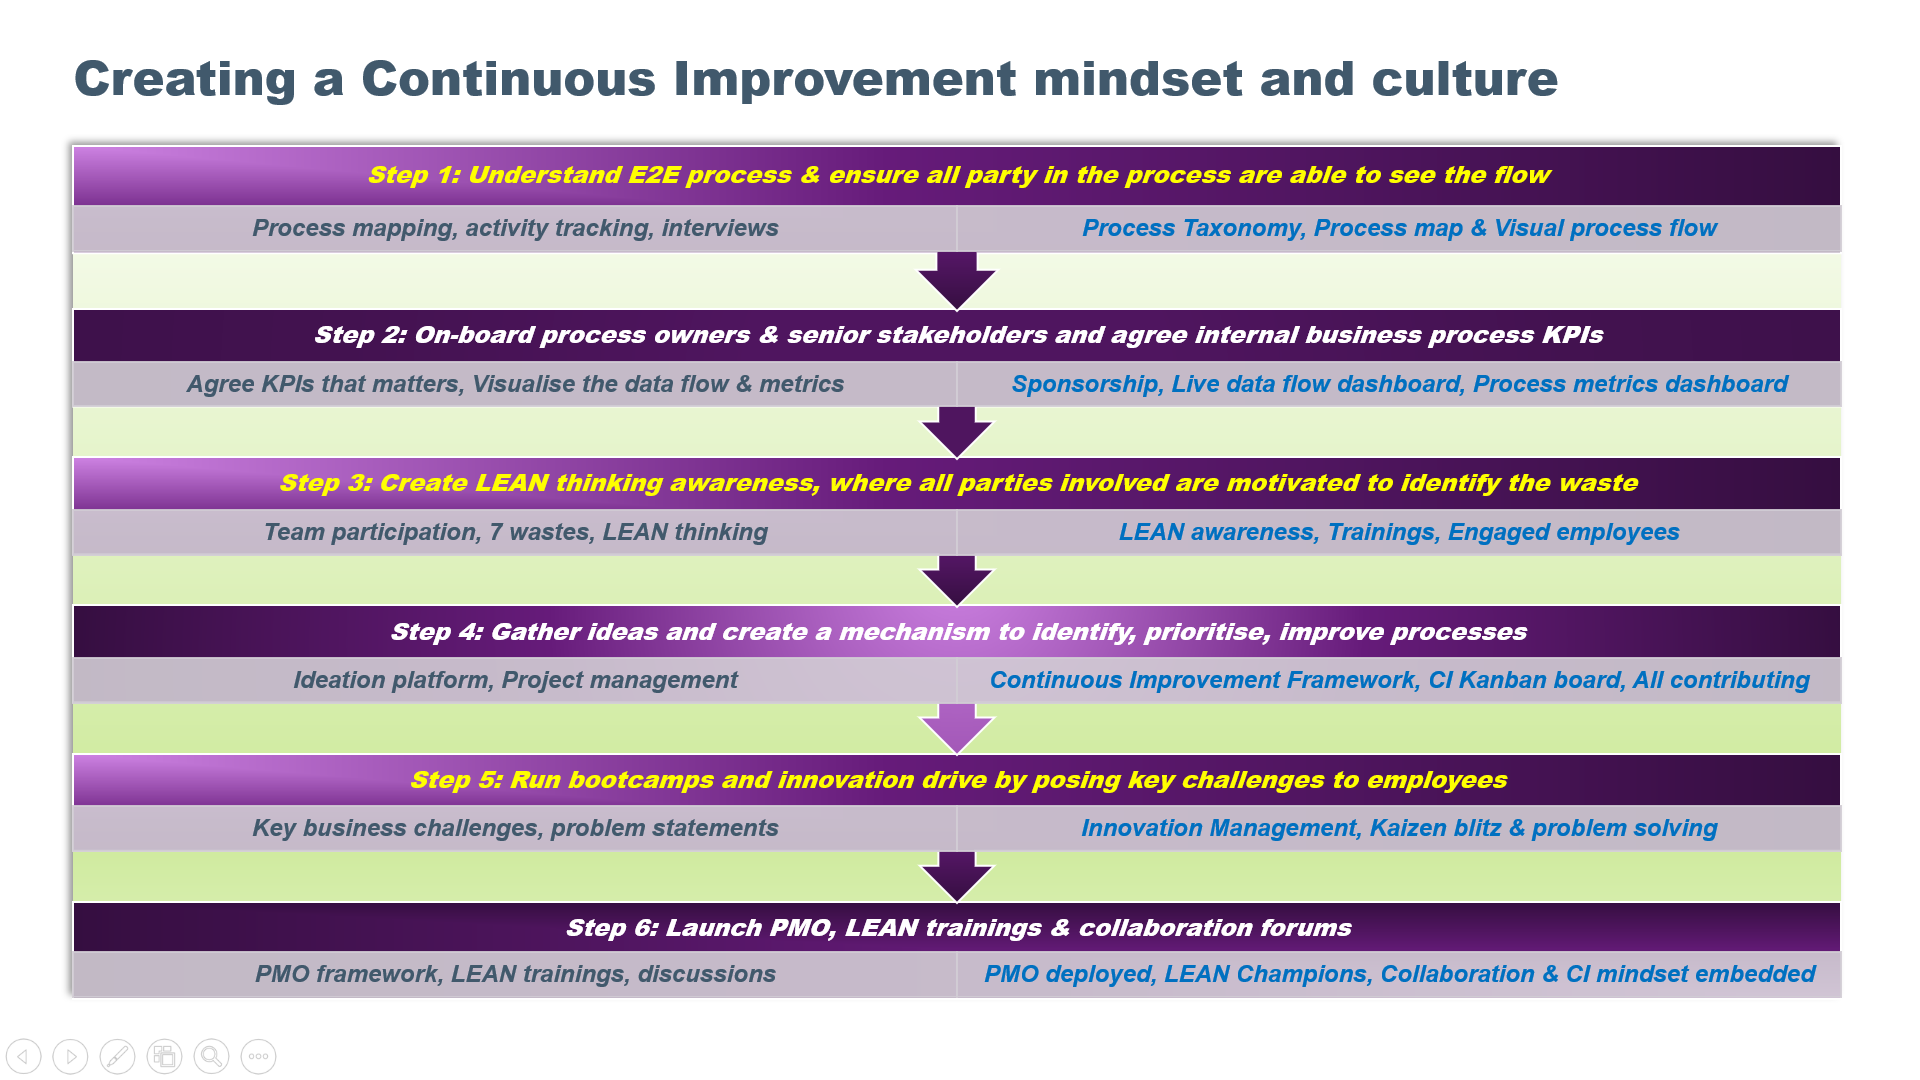 Driving Continuous Improvement Culture in HR